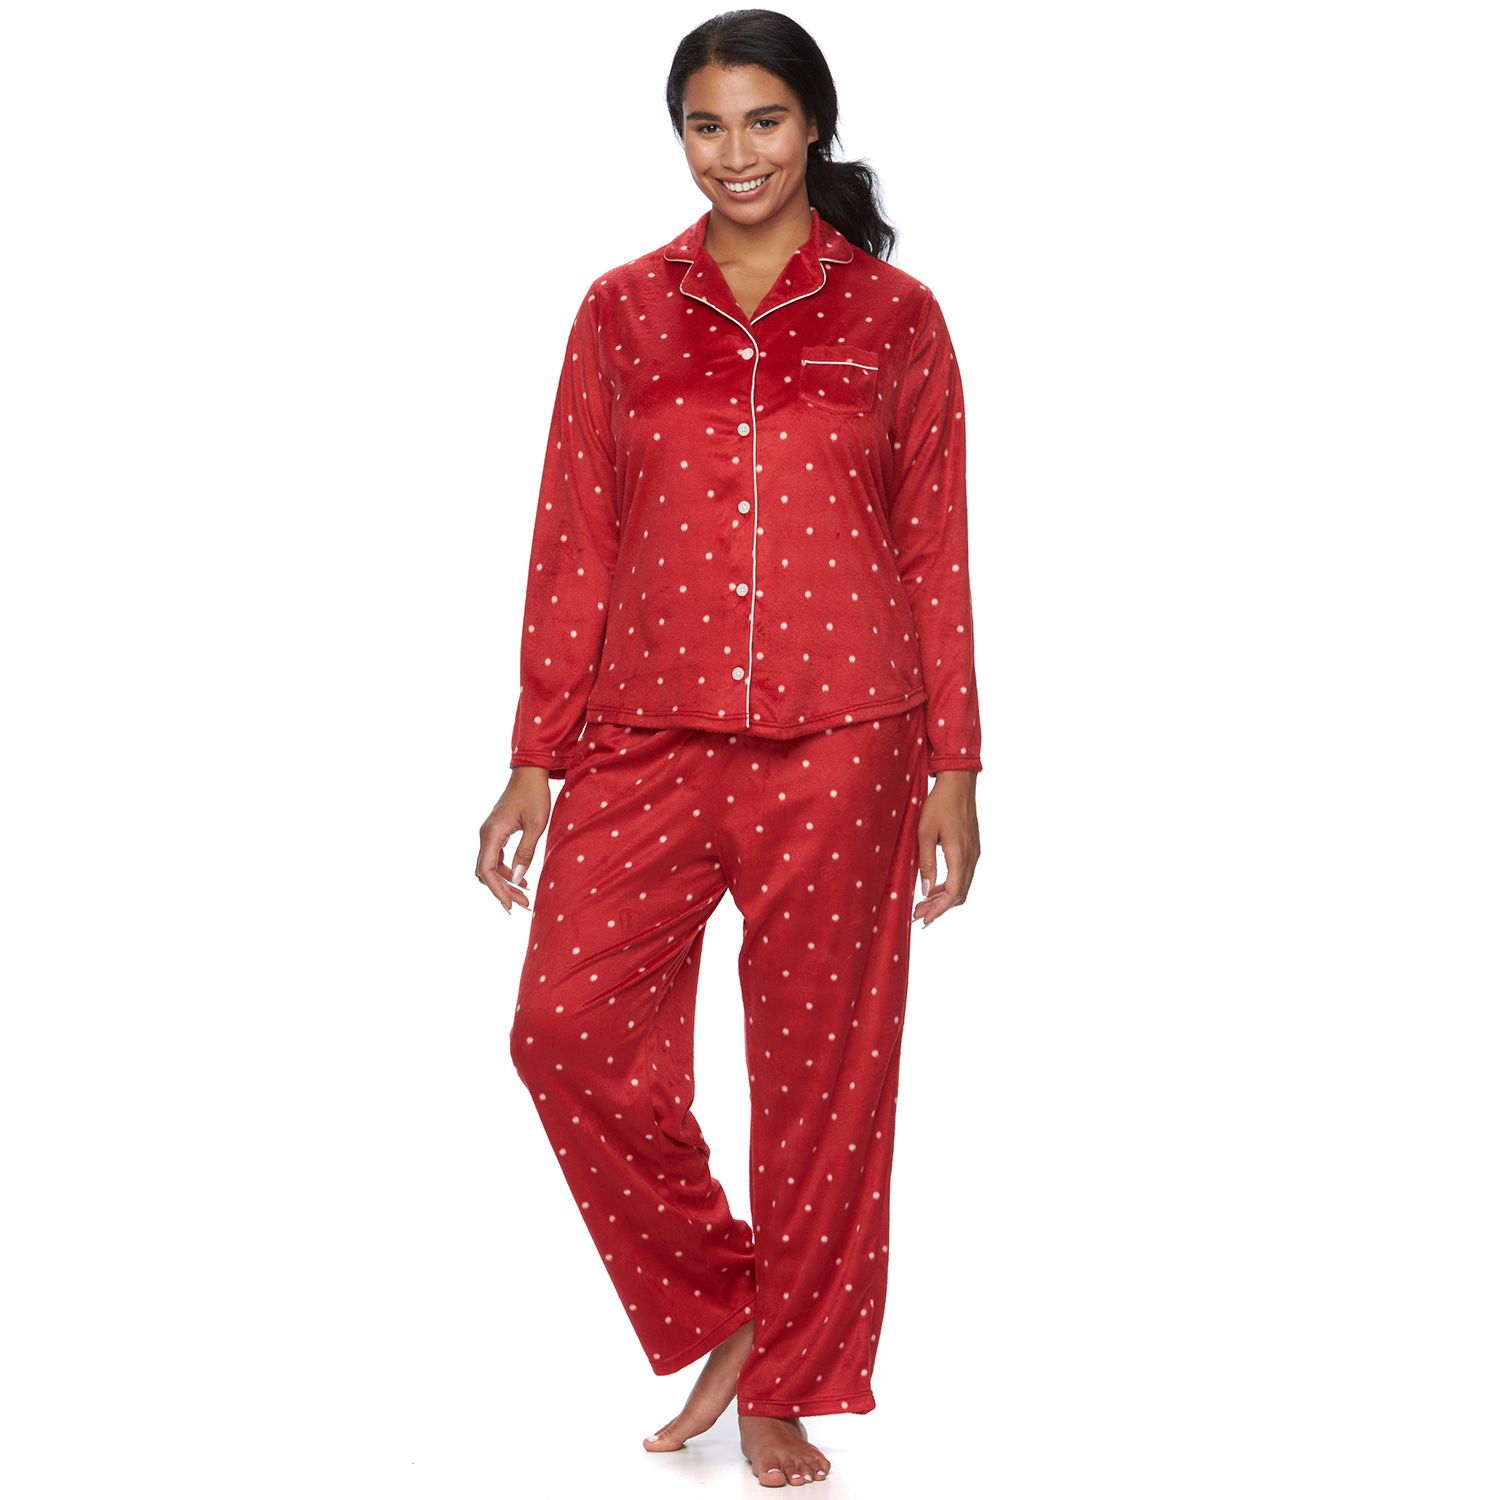 Plus Size Croft & Barrow? Pajamas: Minky Fleece PJ Set